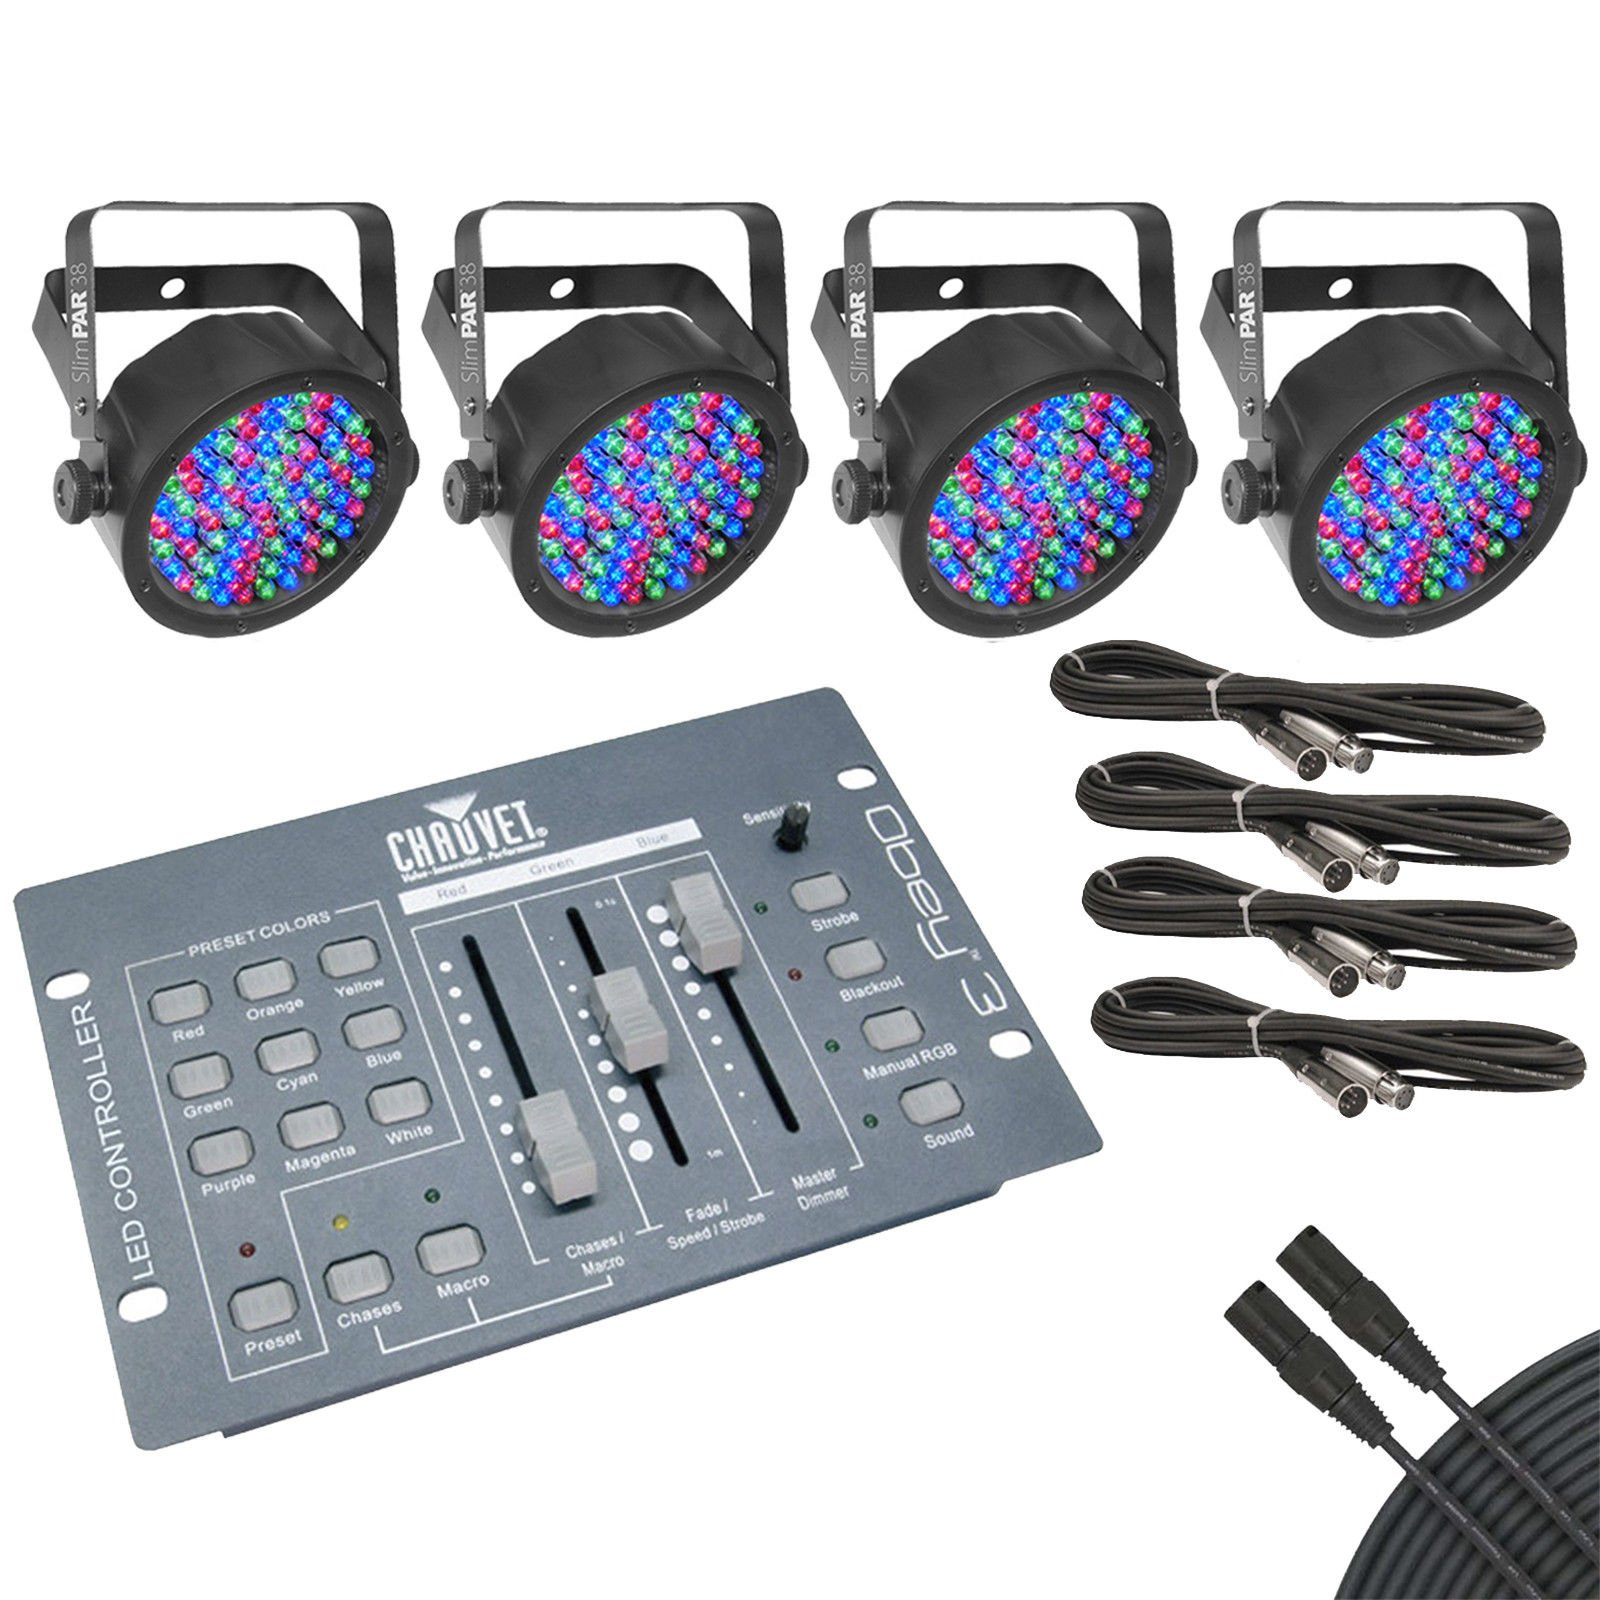 Chauvet SlimPAR 38 4-Pack w/ Chauvet Obey 3 DMX Lighting Controller and Cables